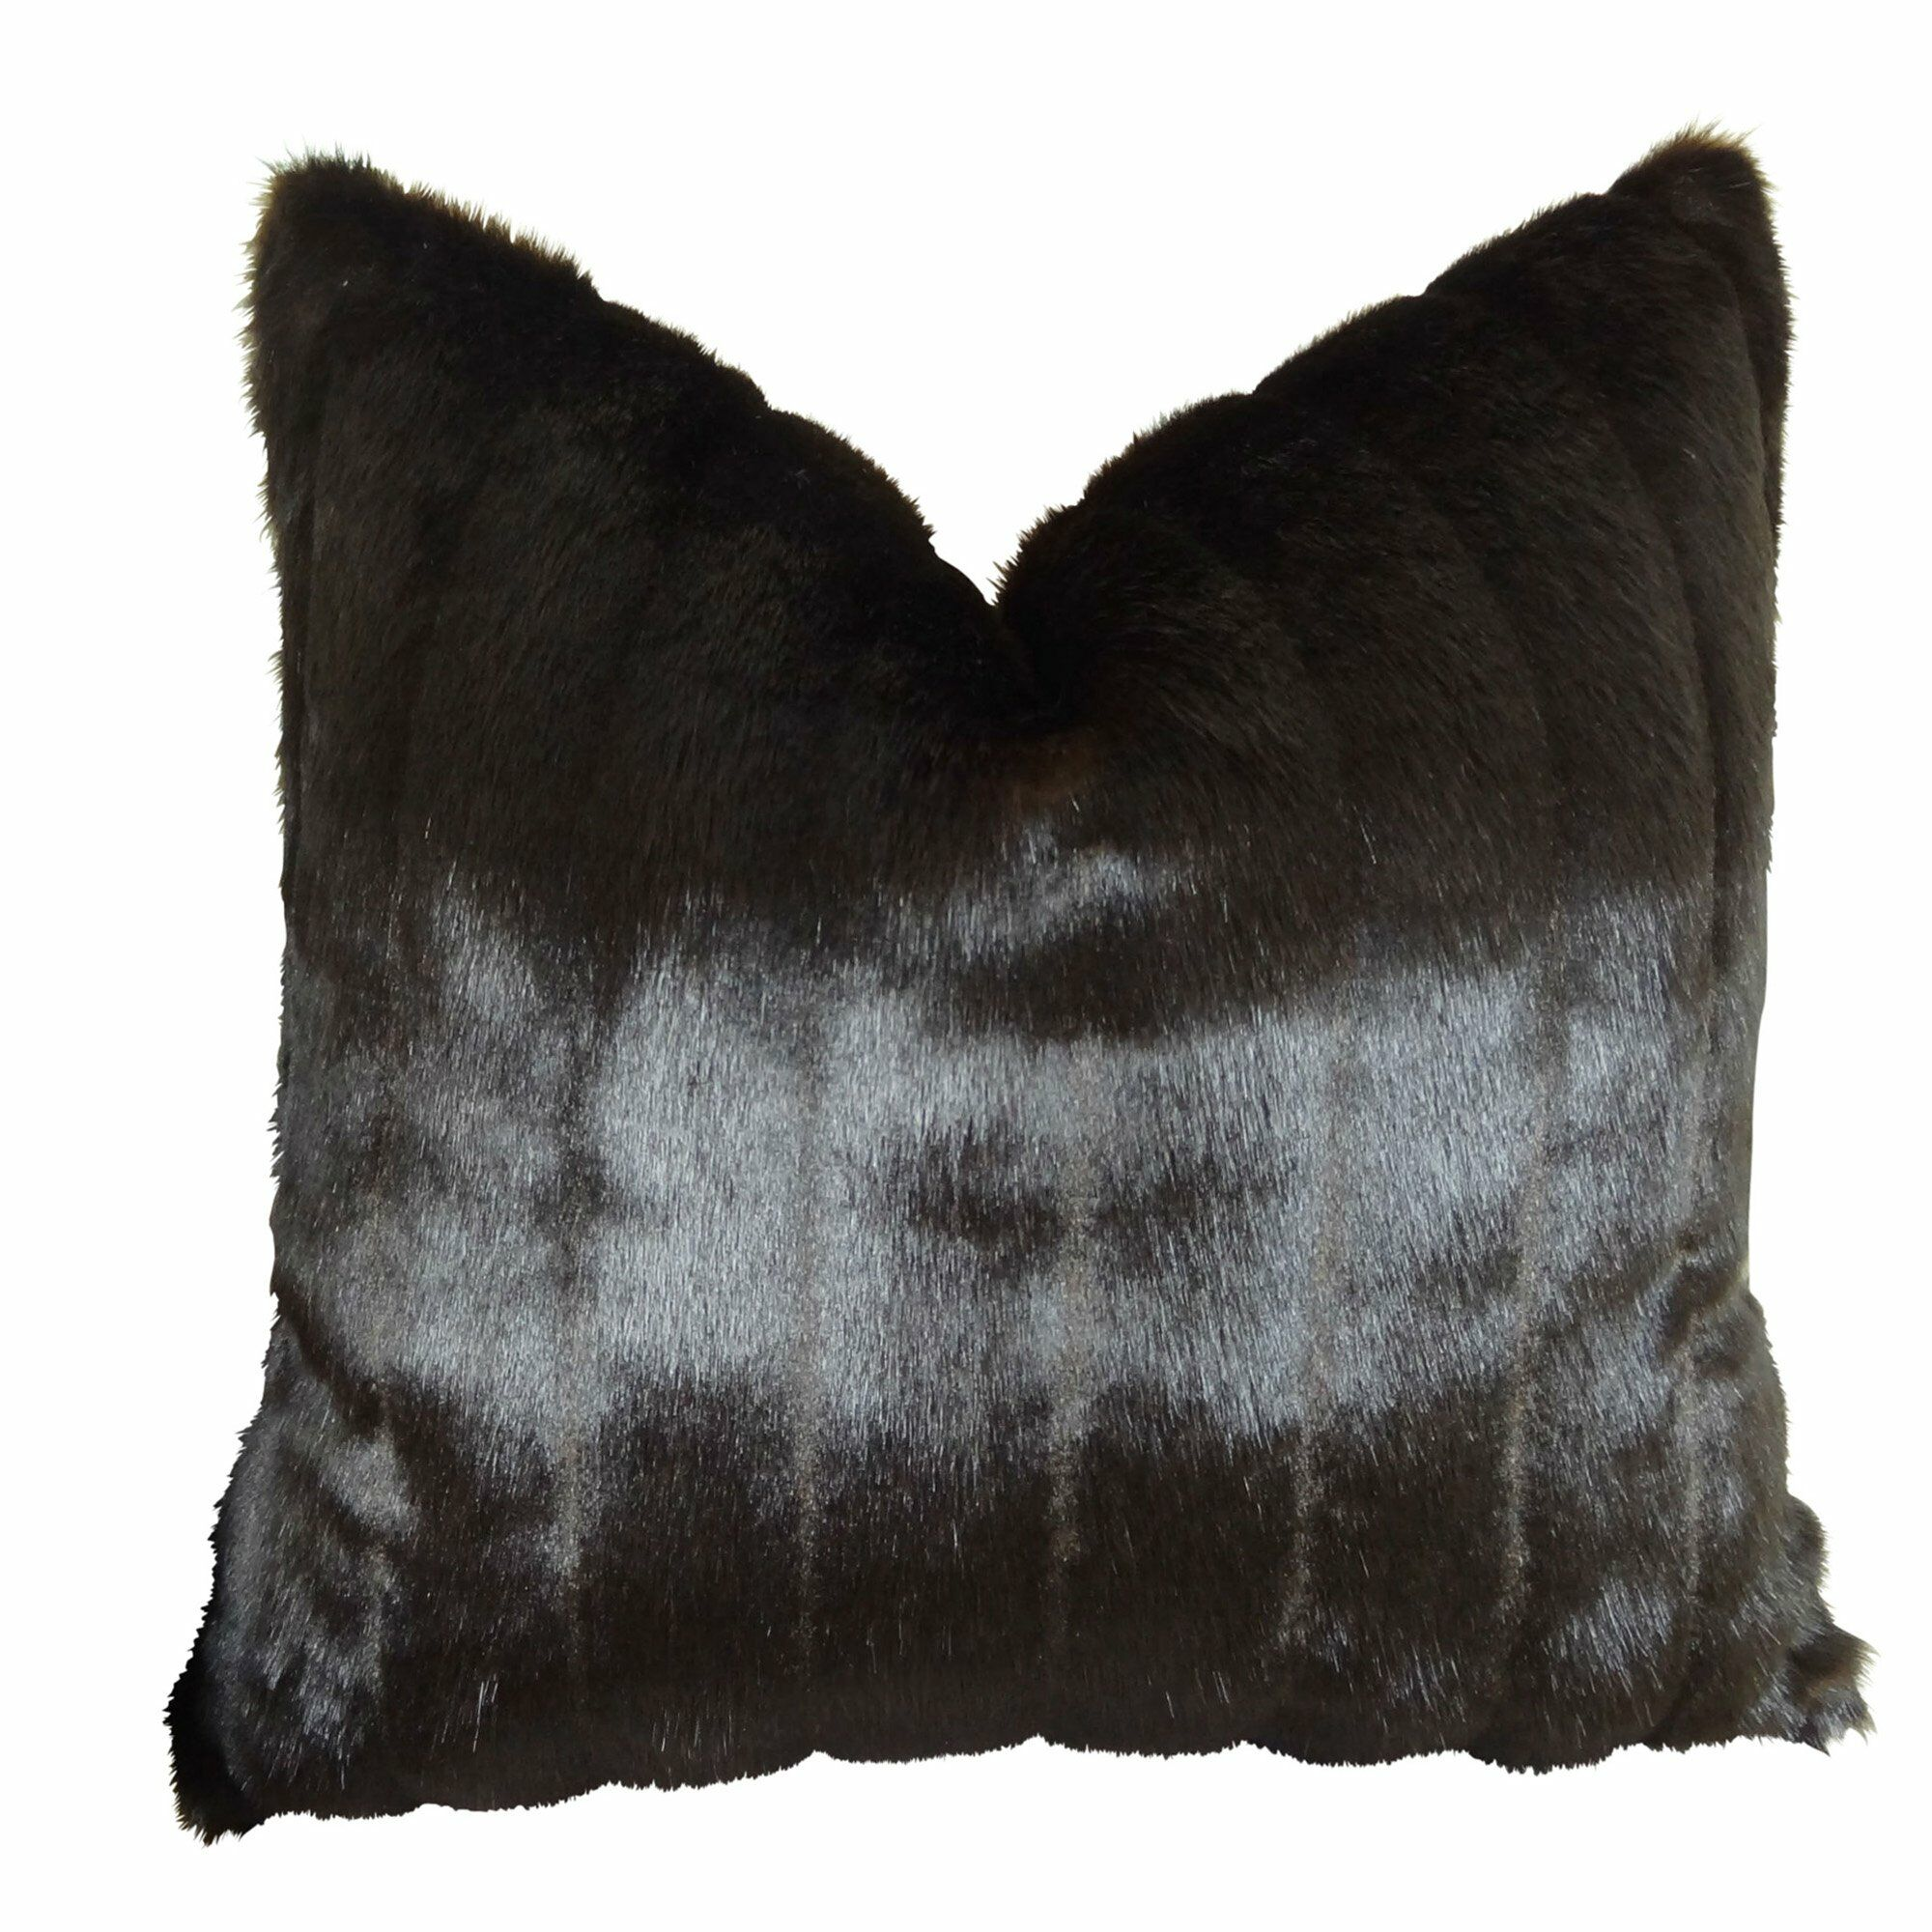 Jourdan Mink Faux Fur Pillow Fill Material: H-allrgnc Polyfill, Size: 20